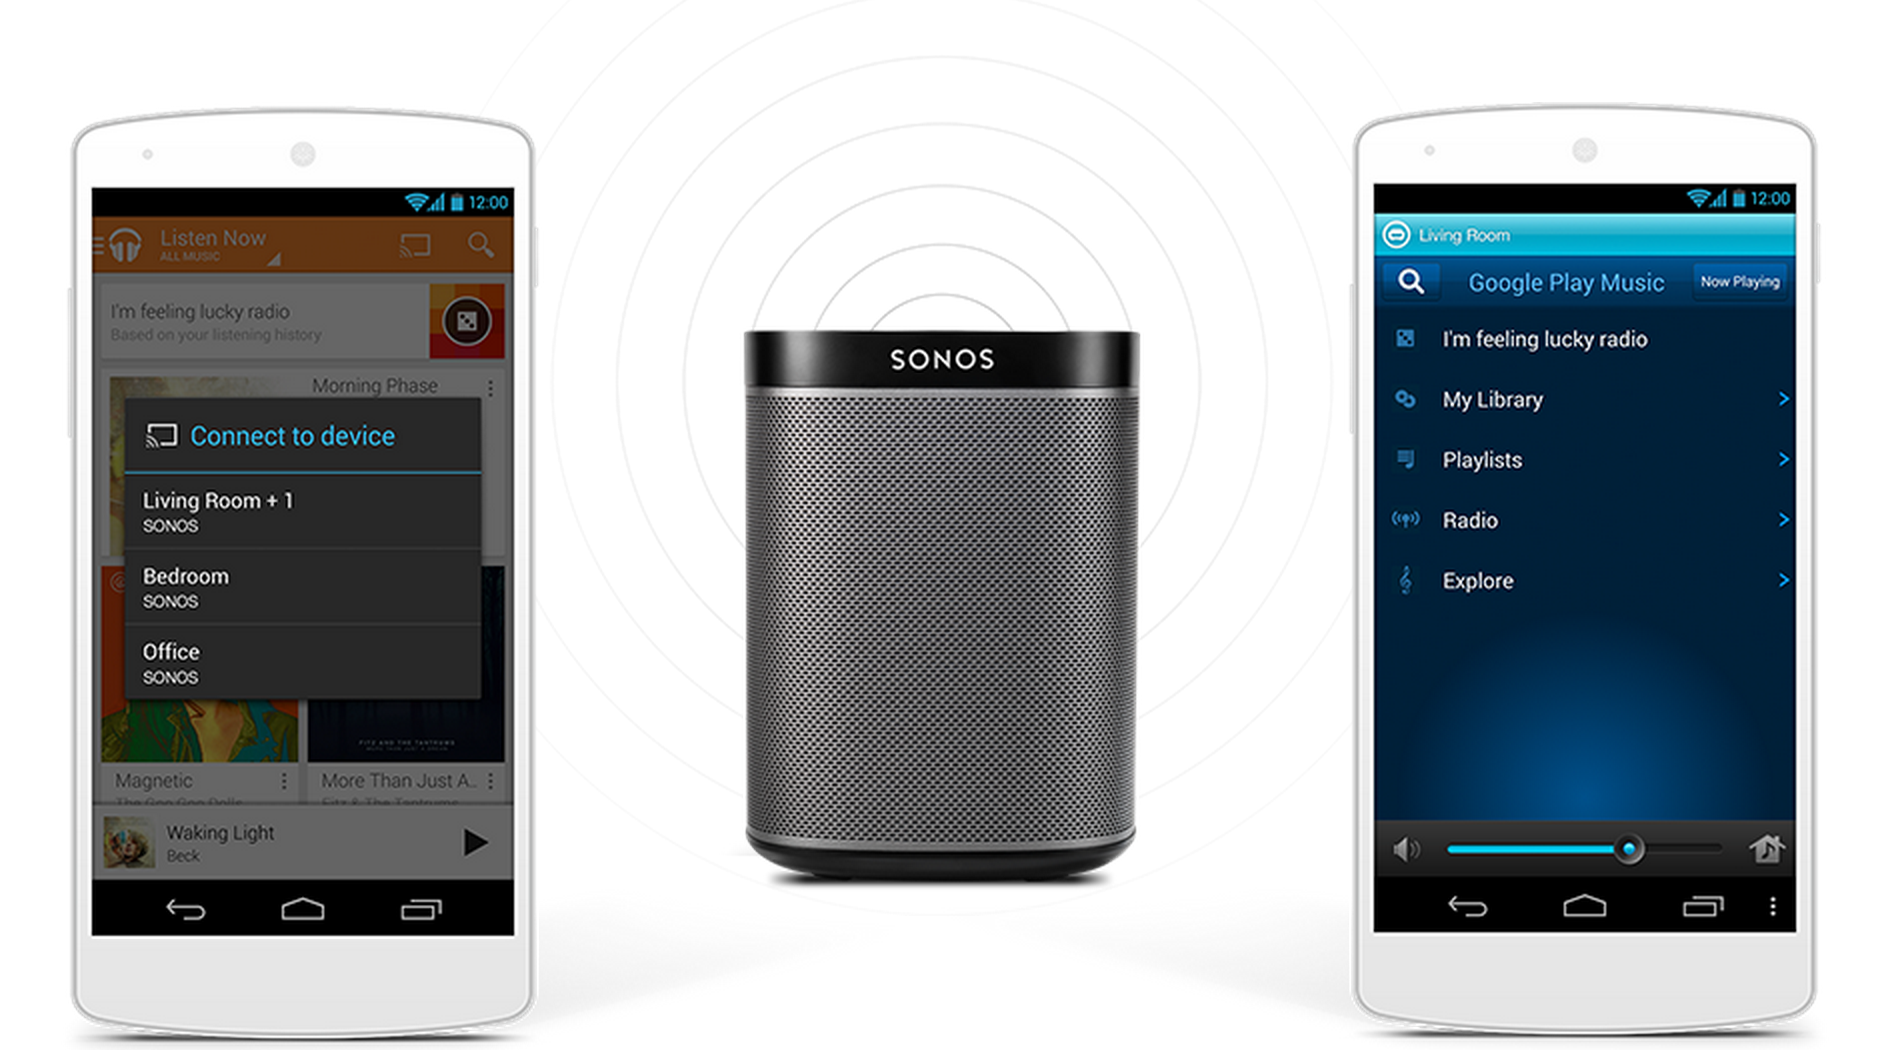 Sonos-Google-Play-music